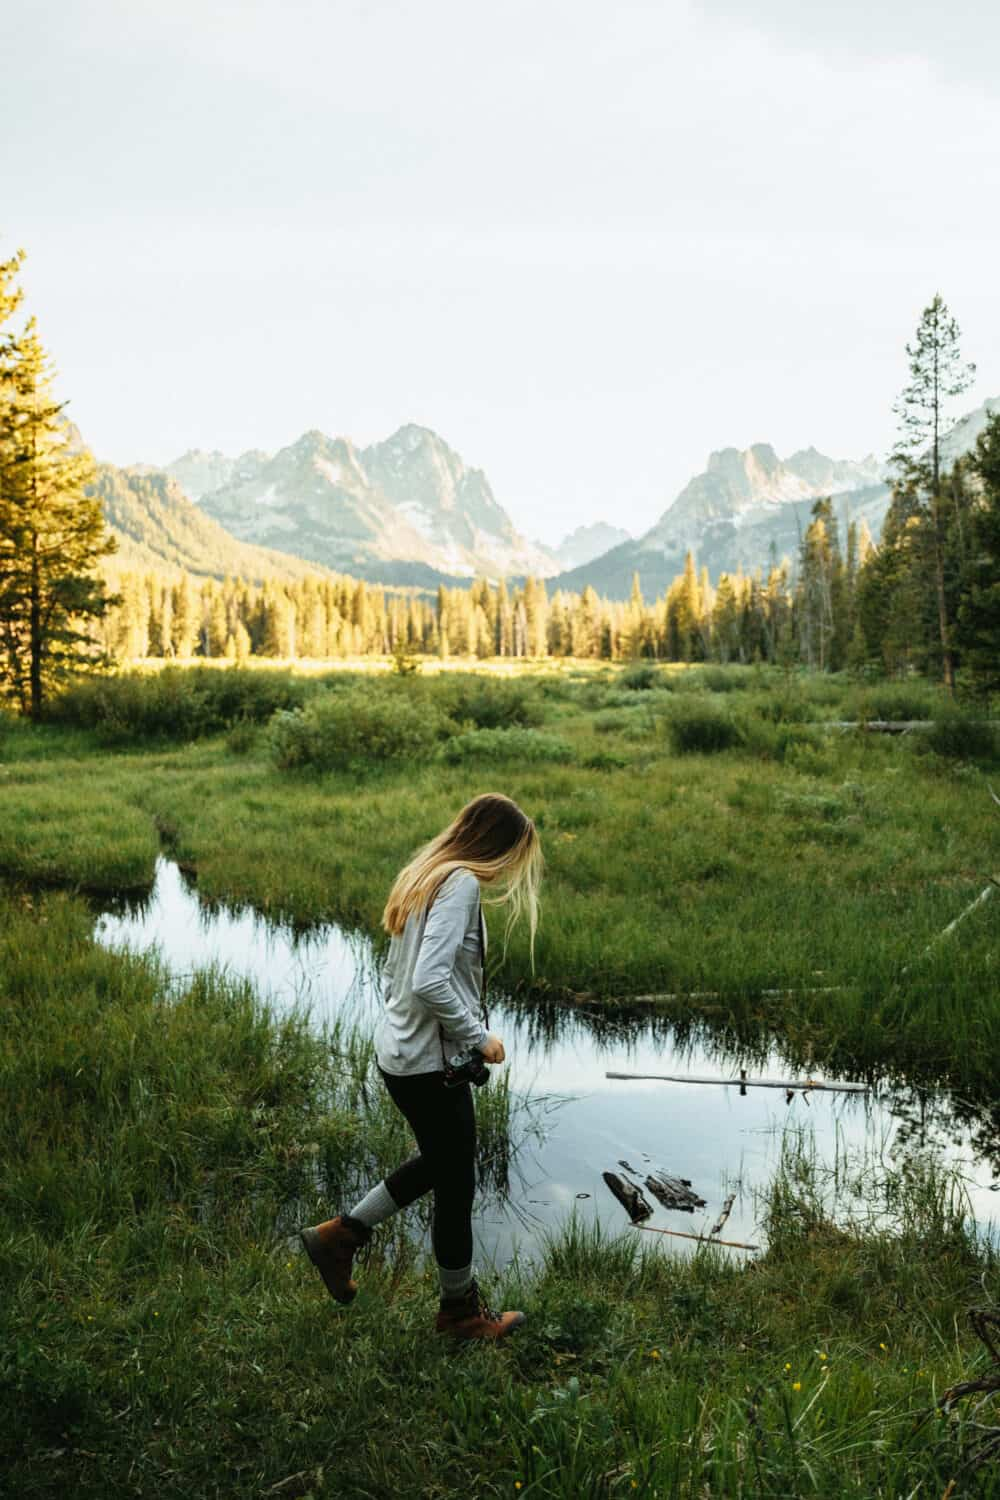 Weekend Trips From Boise, Idaho - The Sawtooth Mountains